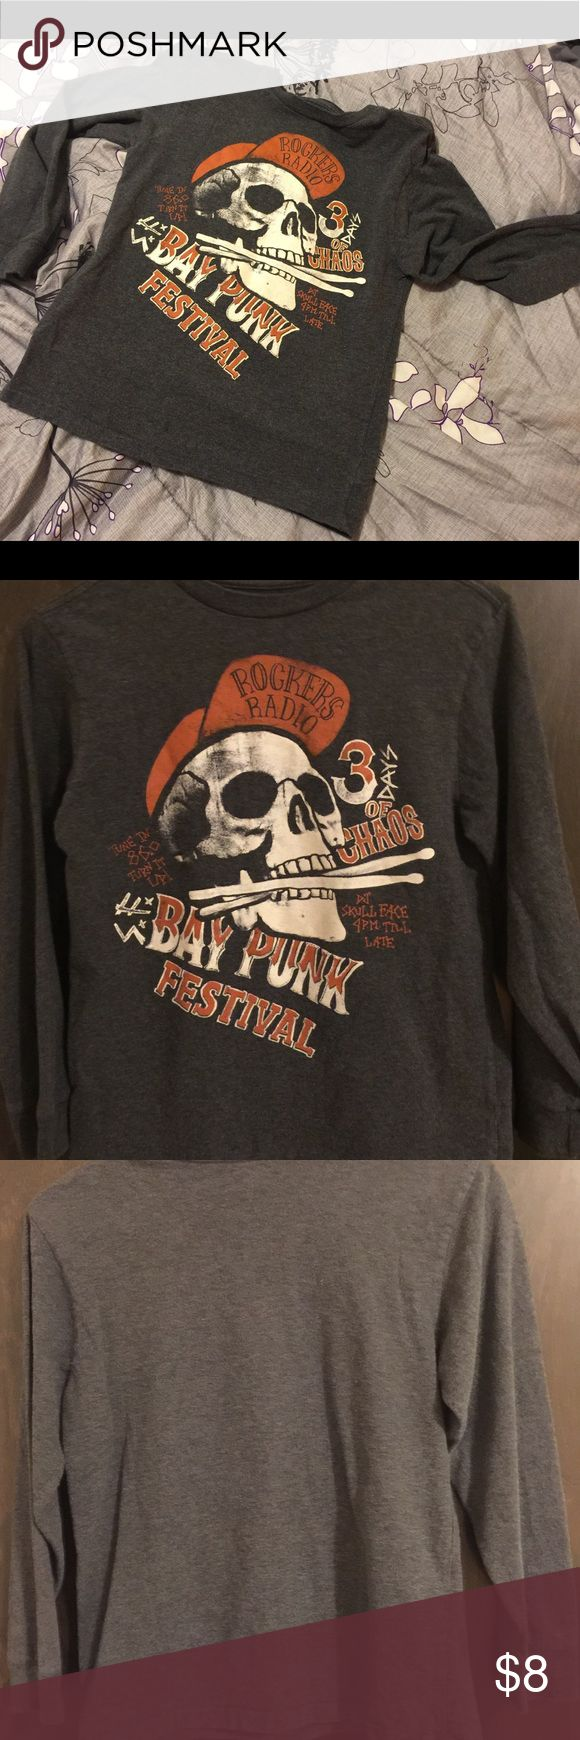 "NWOT GAP Kids ( L) 10 Long Sleeve drk gray t-shirt ""Bay Punk Festival"" T-Shirt Rare 100% Cotton sooooo soft 21 "" front collar to bottom of shirt and 14 3/4 "" Sleeve inseem GAP Kids Shirts & Tops Tees - Long Sleeve"